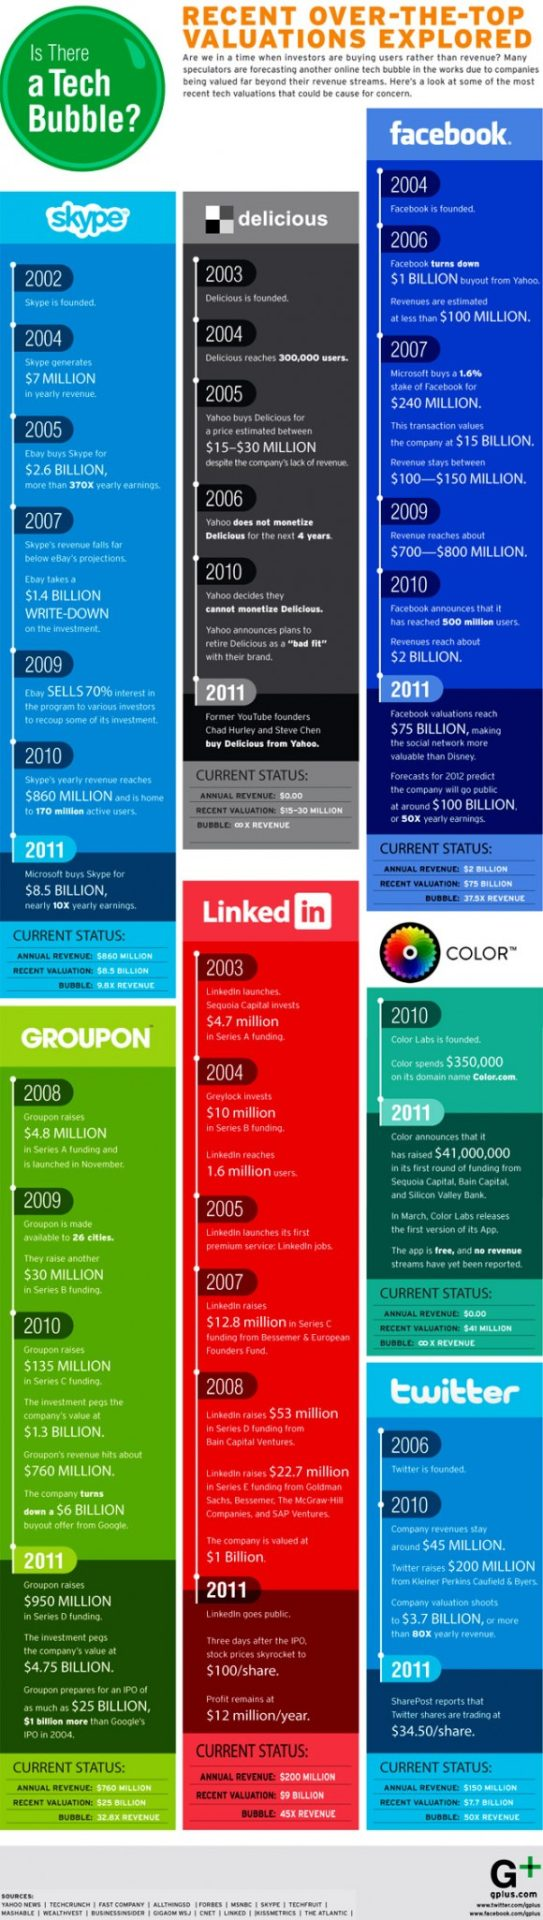 Social Media Valuations Could Be Sign Of Another Tech Bubble Burst [Infographic]